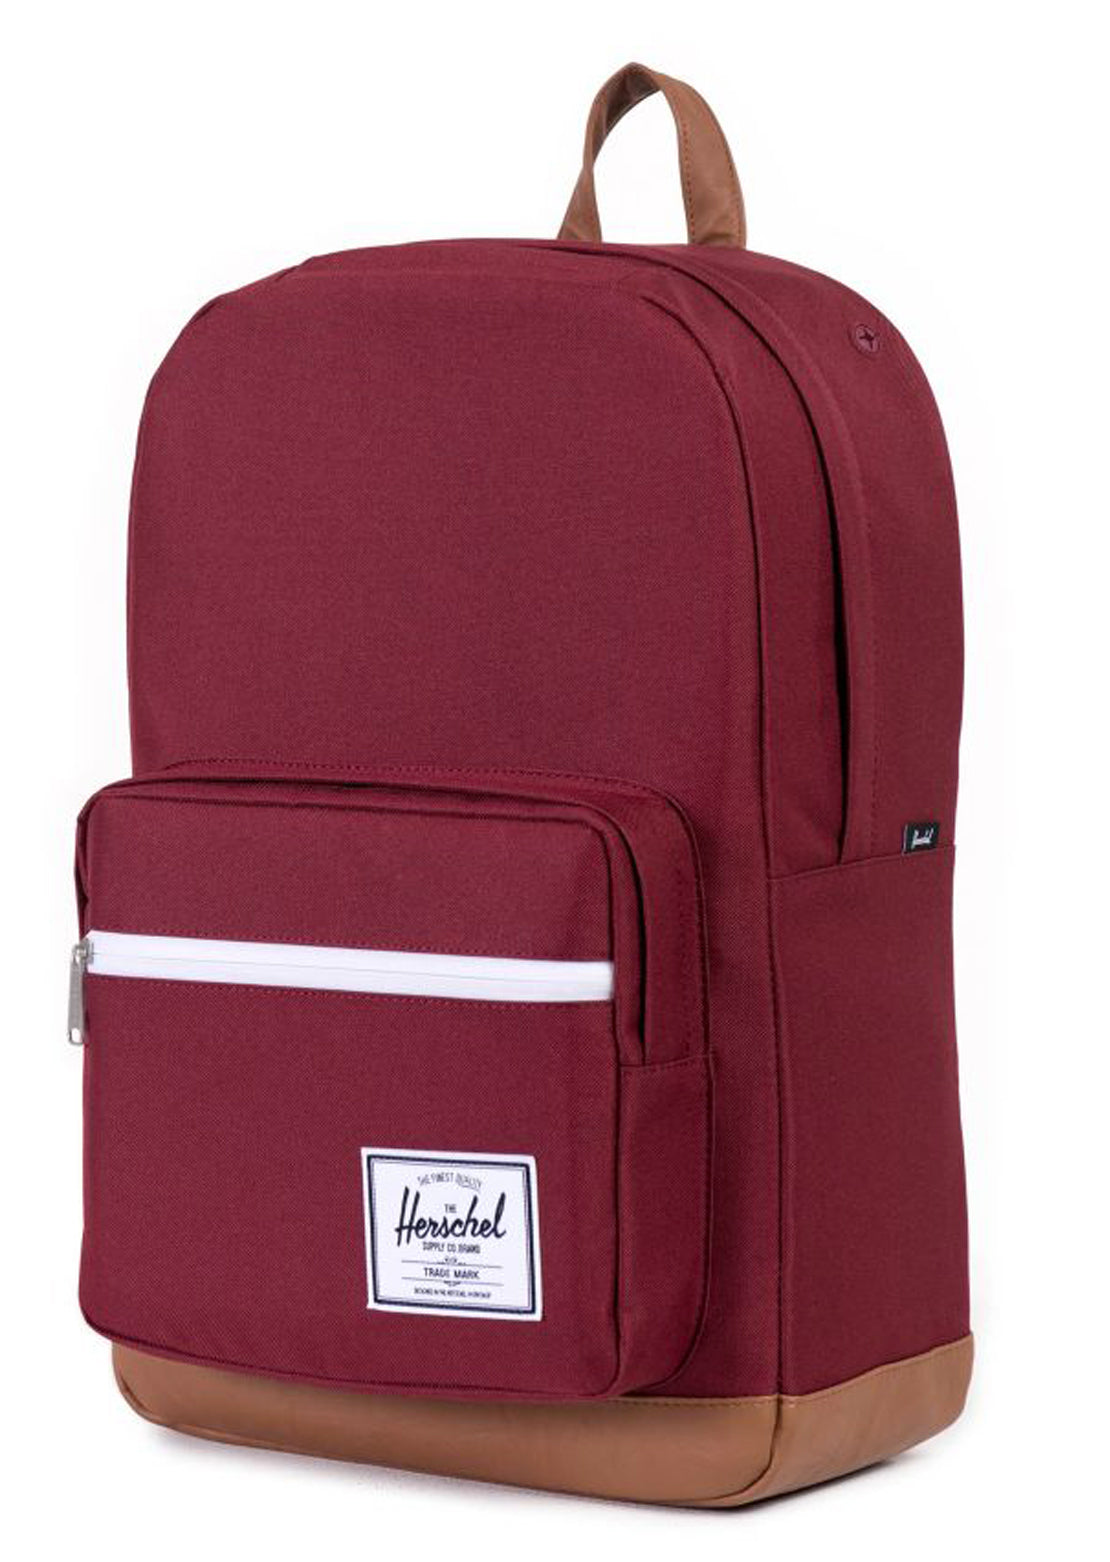 Herschel Pop Quiz Backpack Windsor Wine/Tan Synthetic Leather